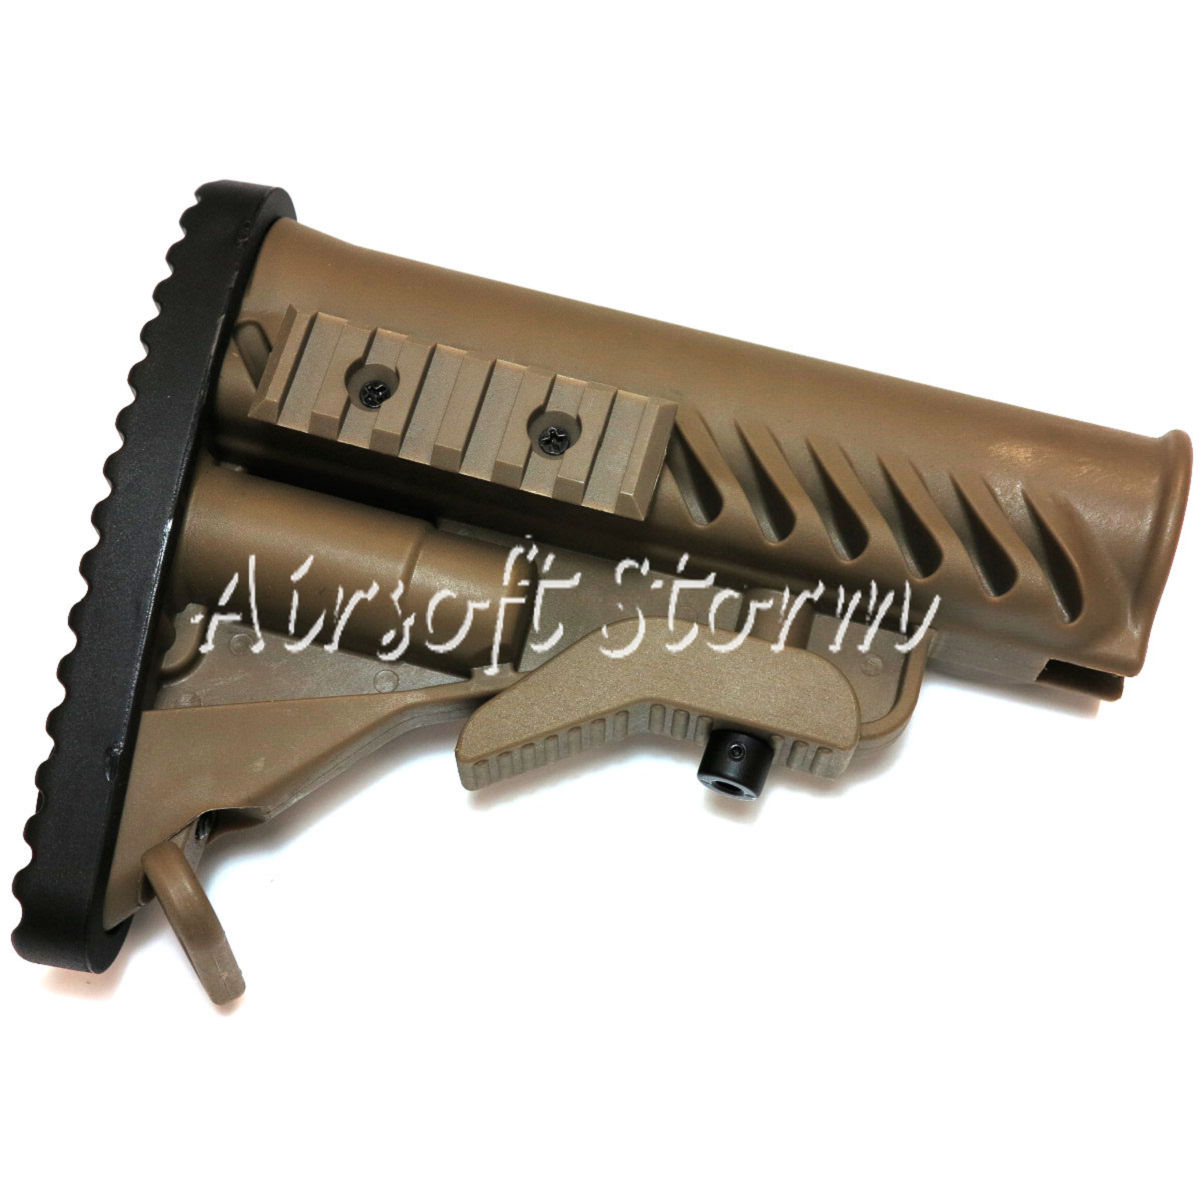 Airsoft Tactical Gear APS Battle Tele Style Stock for M4/M16 AEG Tan